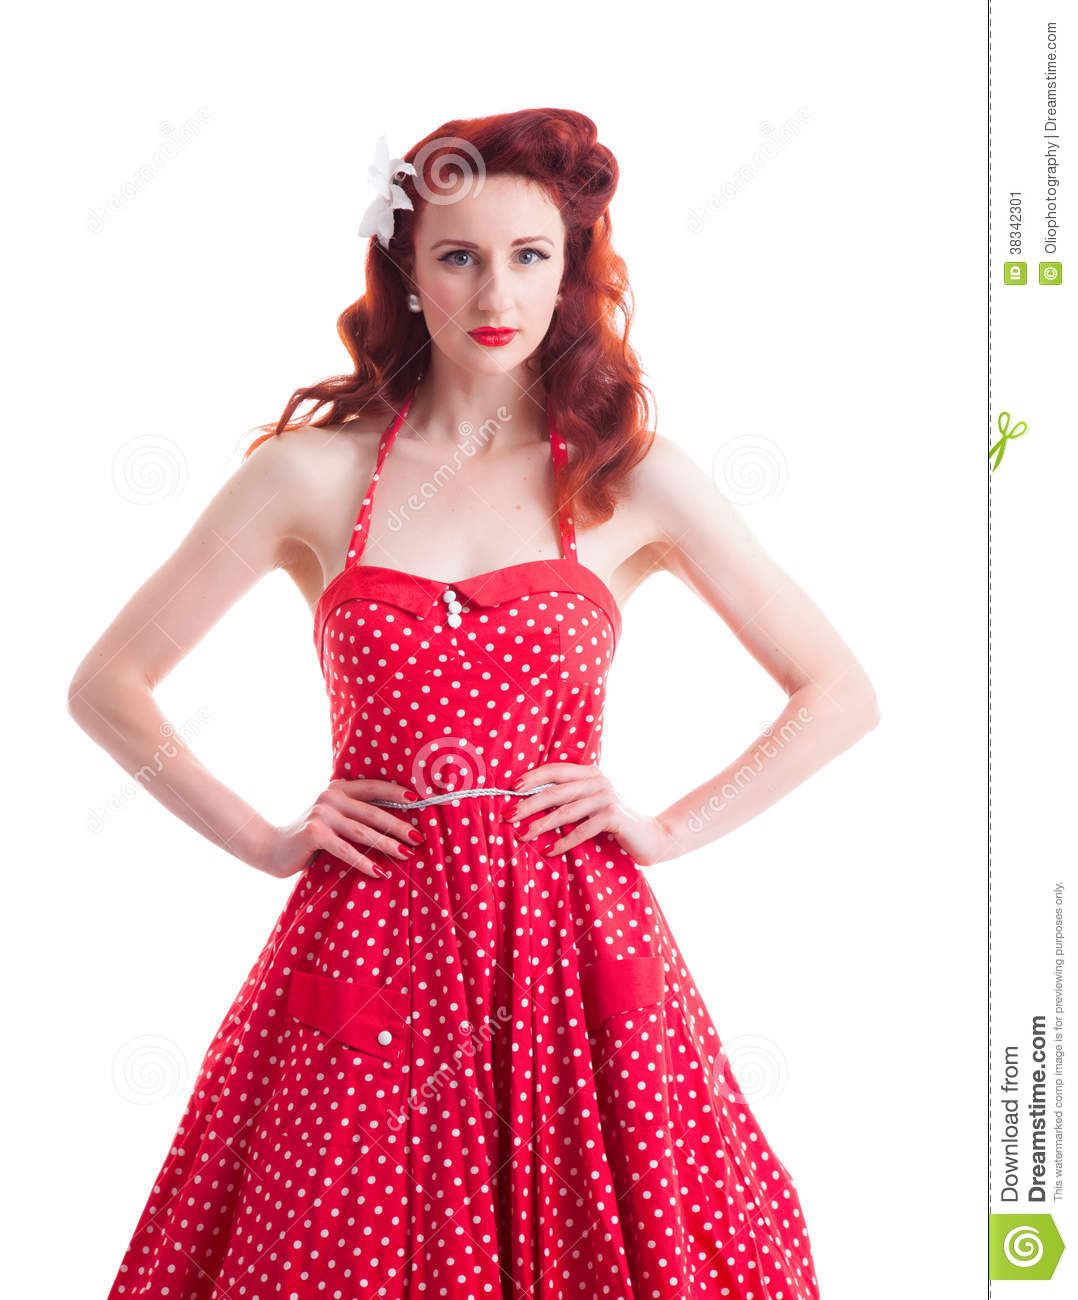 Beautiful Retro Pin-up Girl With Red Polka Dot Dress Stock Image ...